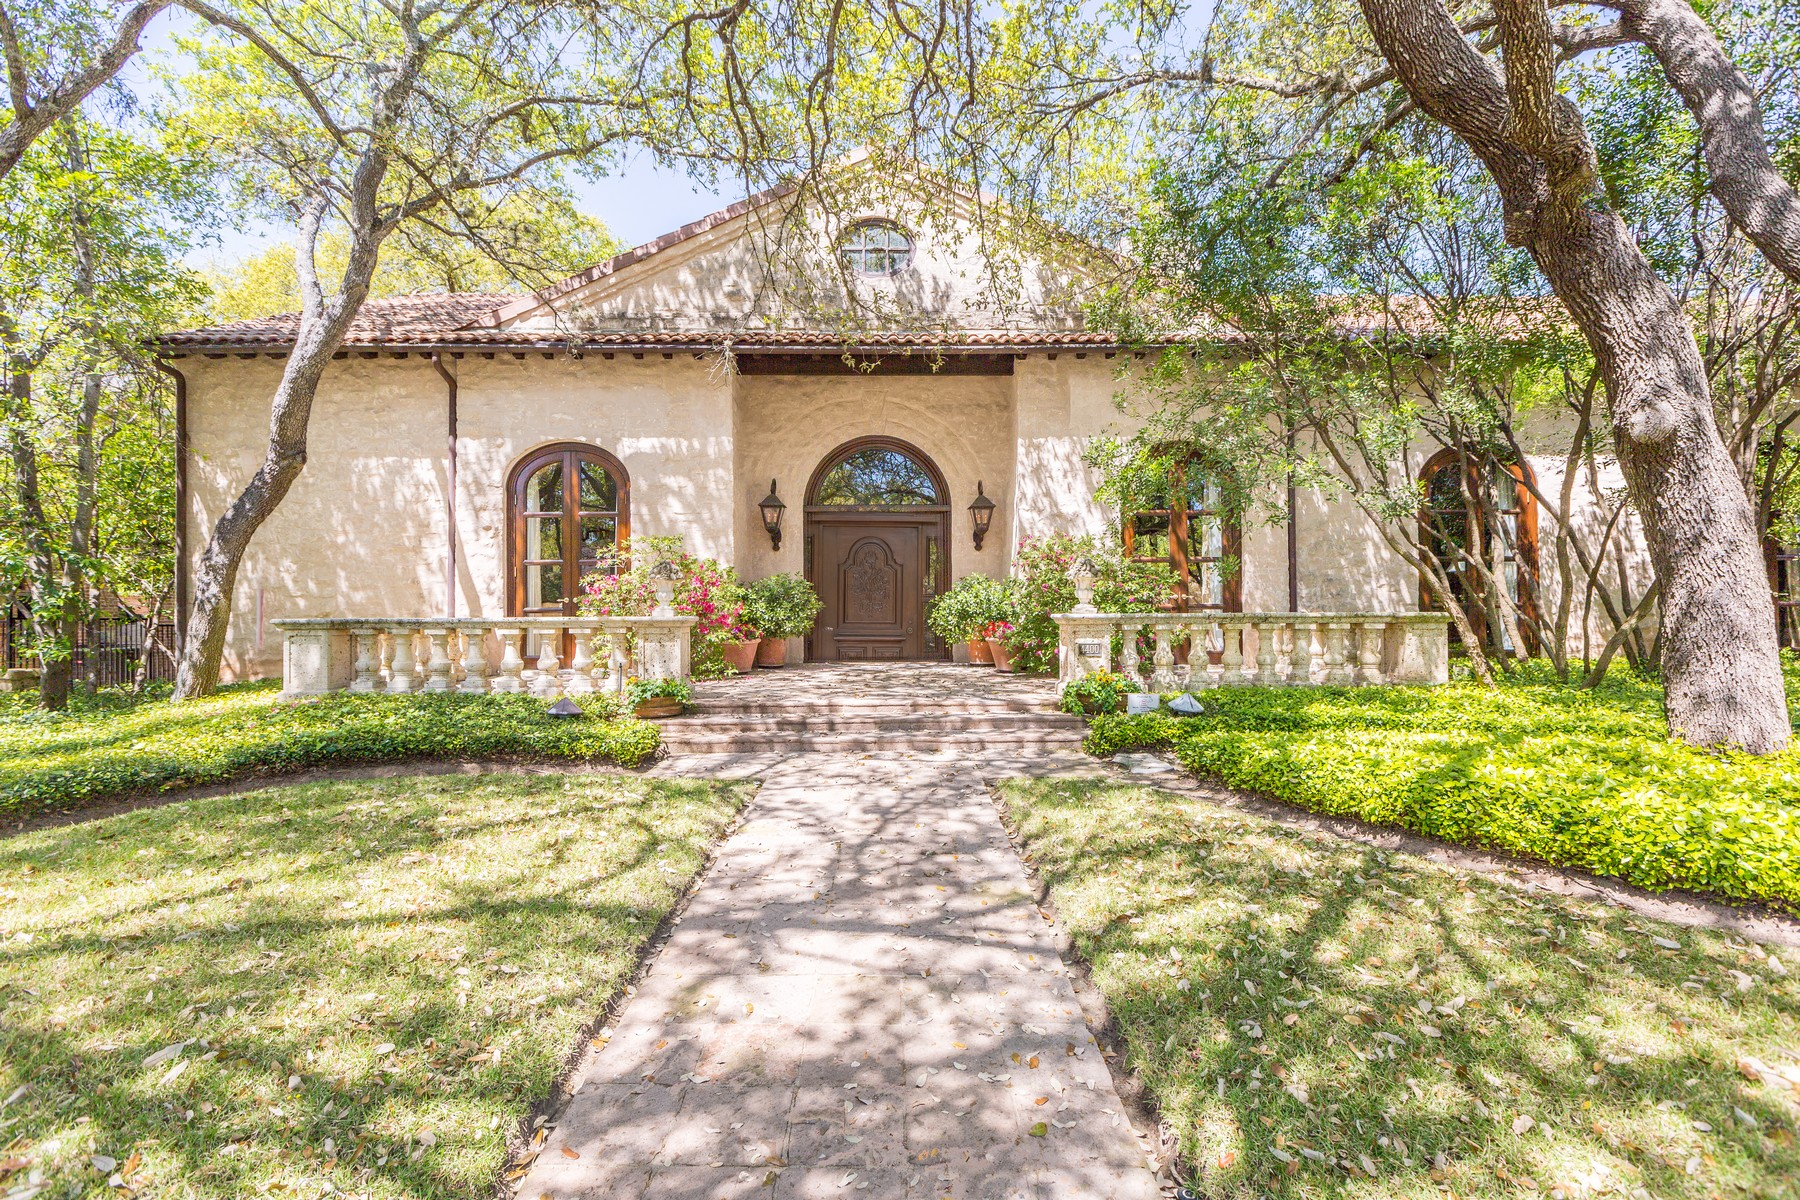 Villa per Vendita alle ore 1 Acre on the Austin Country Club 17th Fairway 4400 Long Champ Dr Austin, Texas, 78746 Stati Uniti